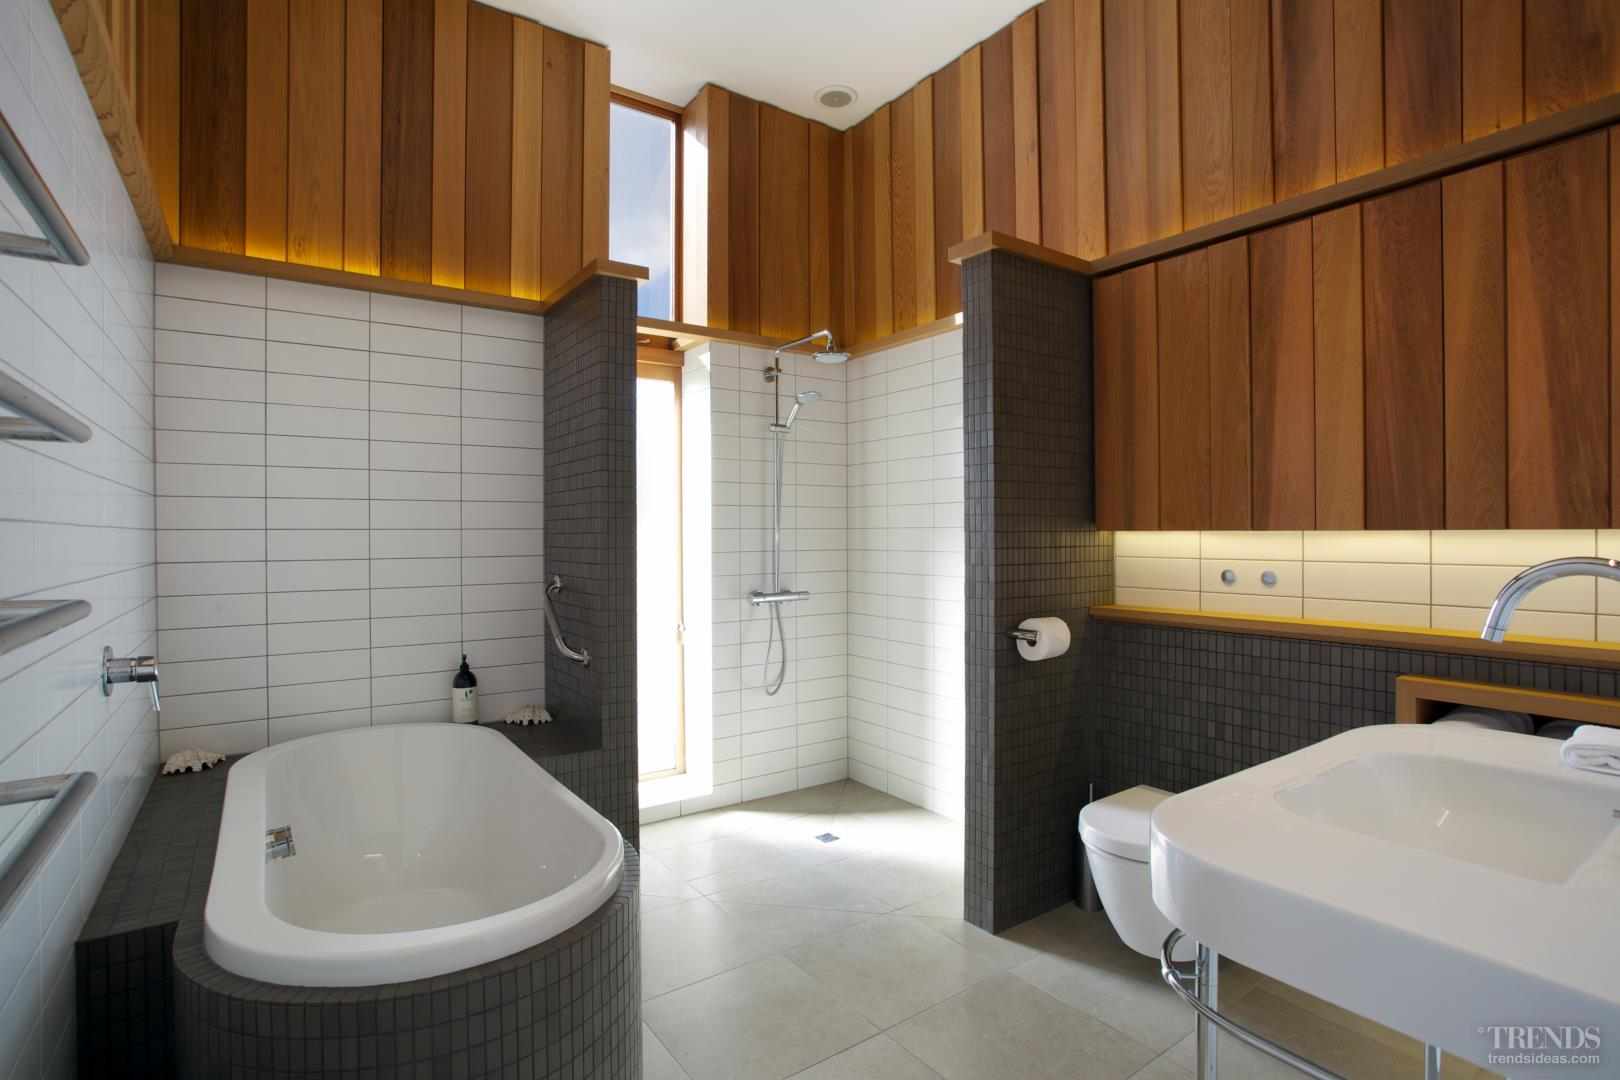 Bedrooms and bathroom auckland new best free home for Bathroom design new zealand